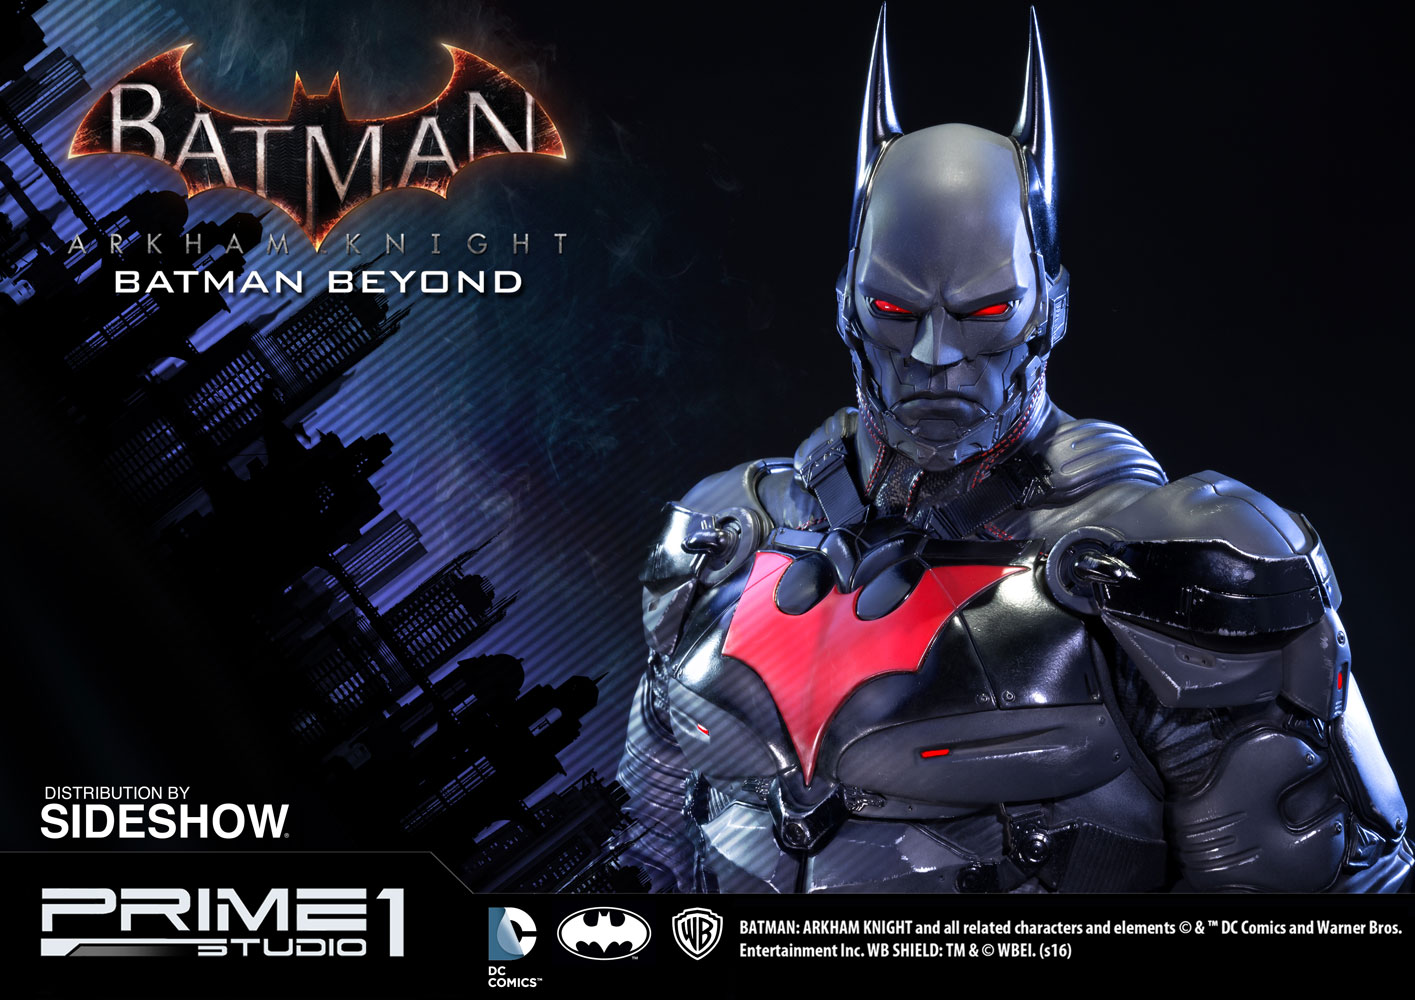 Arkham Knight Batman Beyond Statue